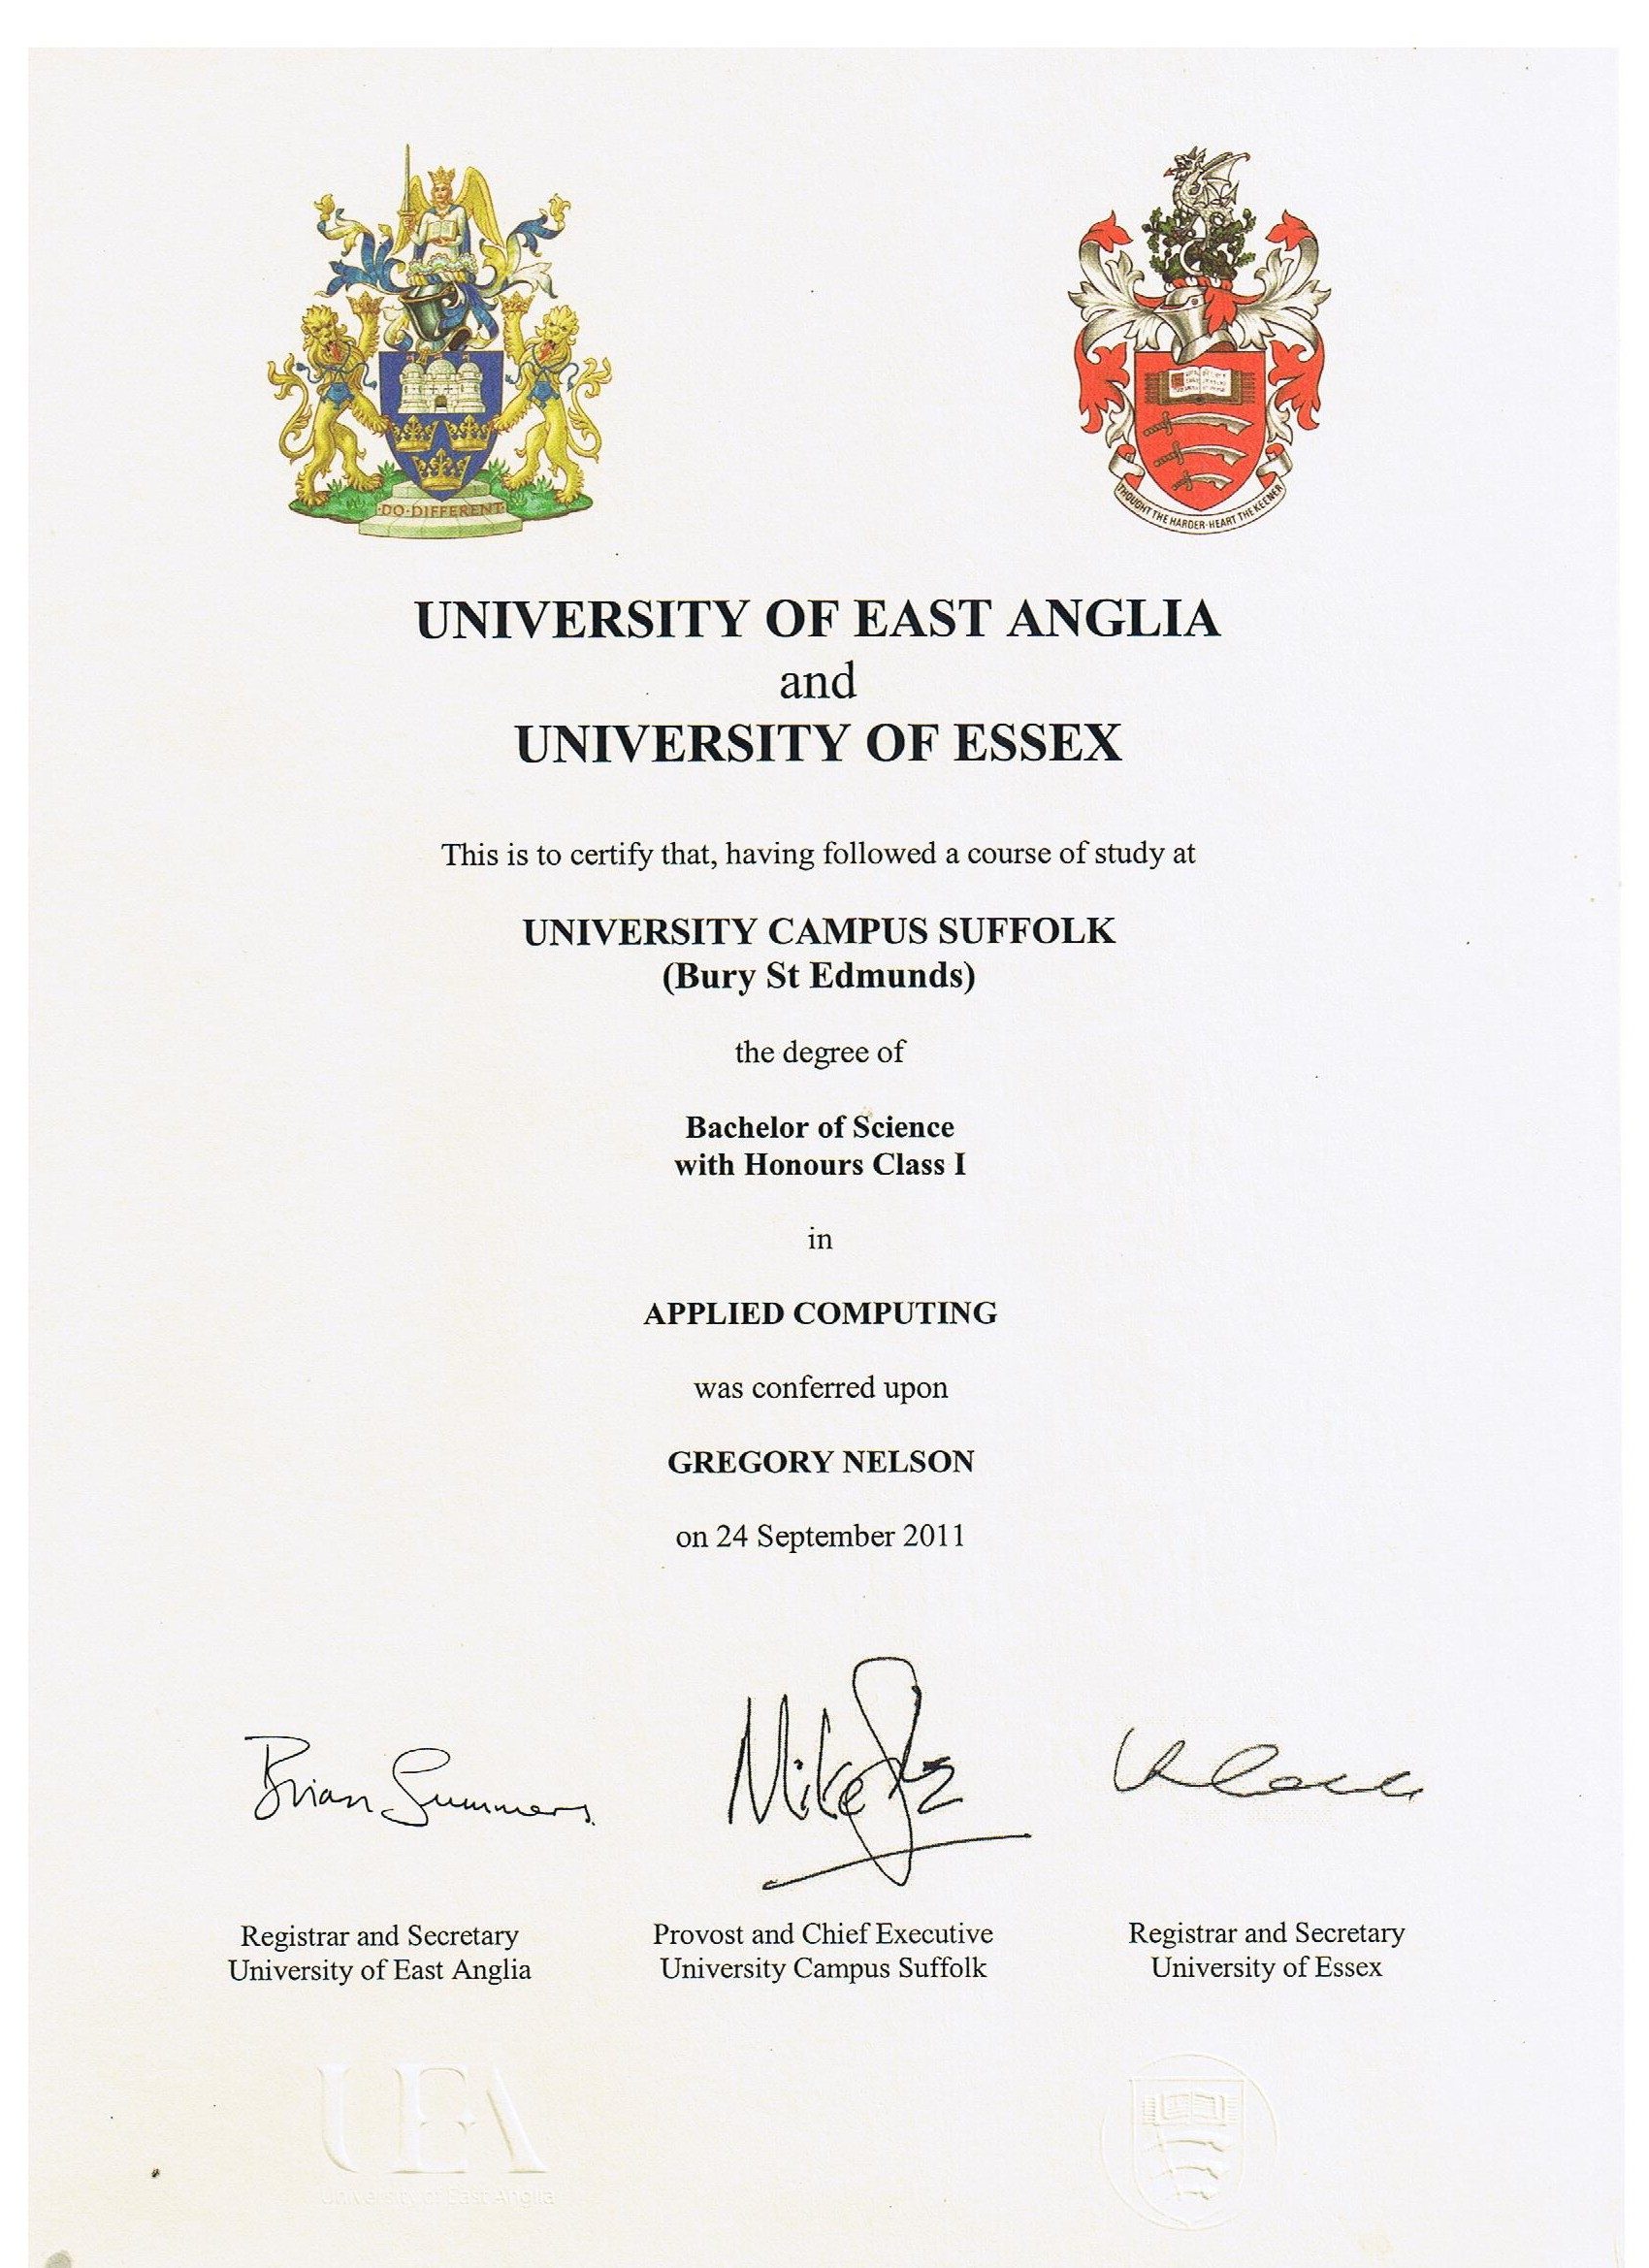 Gregory Nelson 1st Class BSc Hons